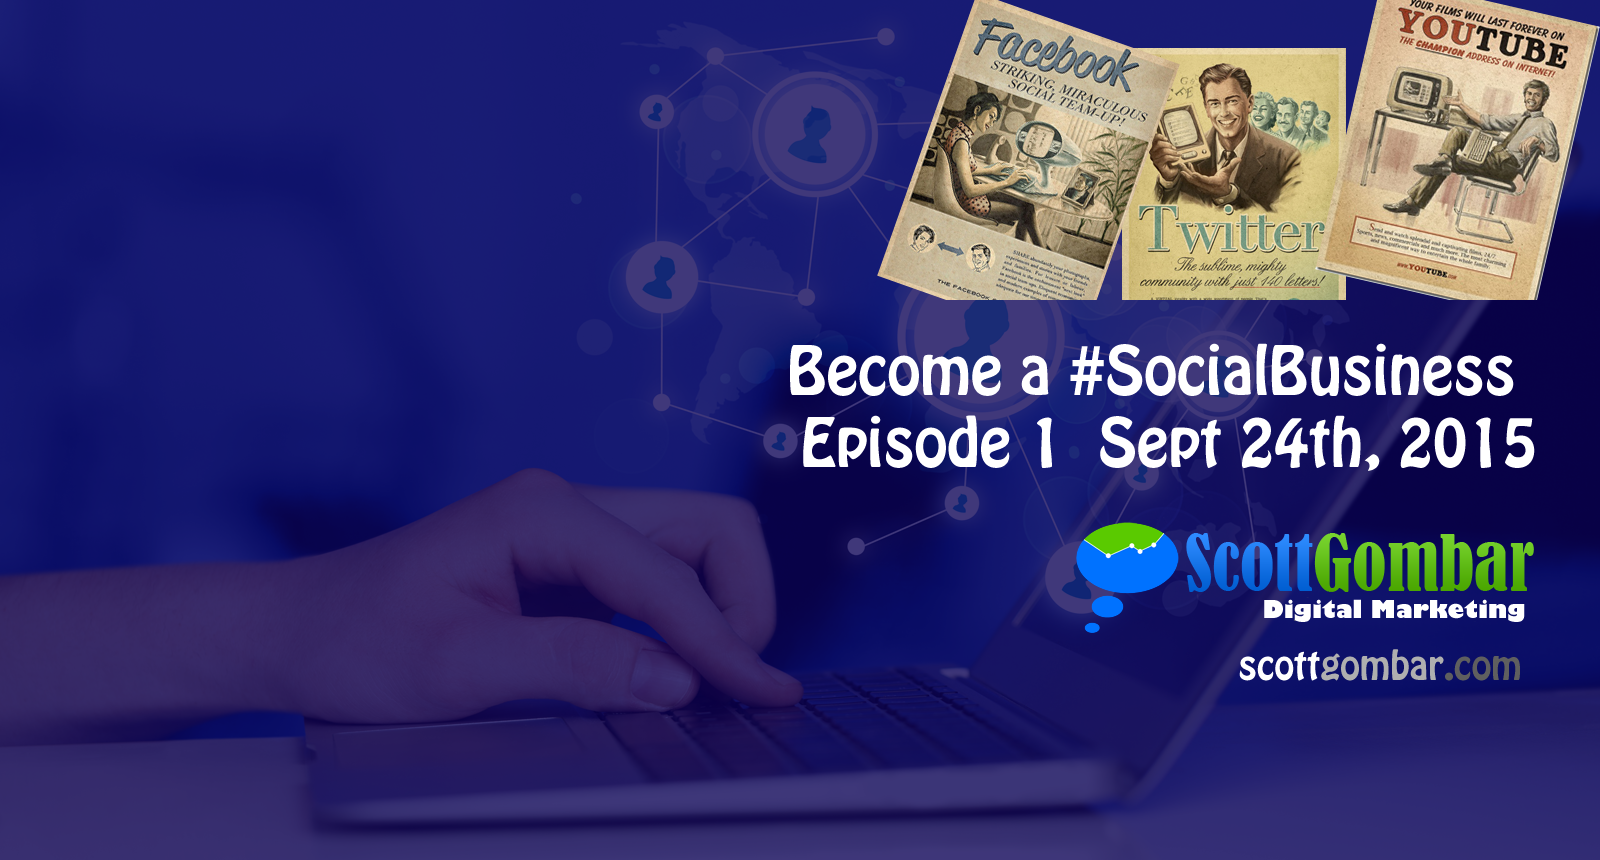 Episode 1 of Become a Social Business